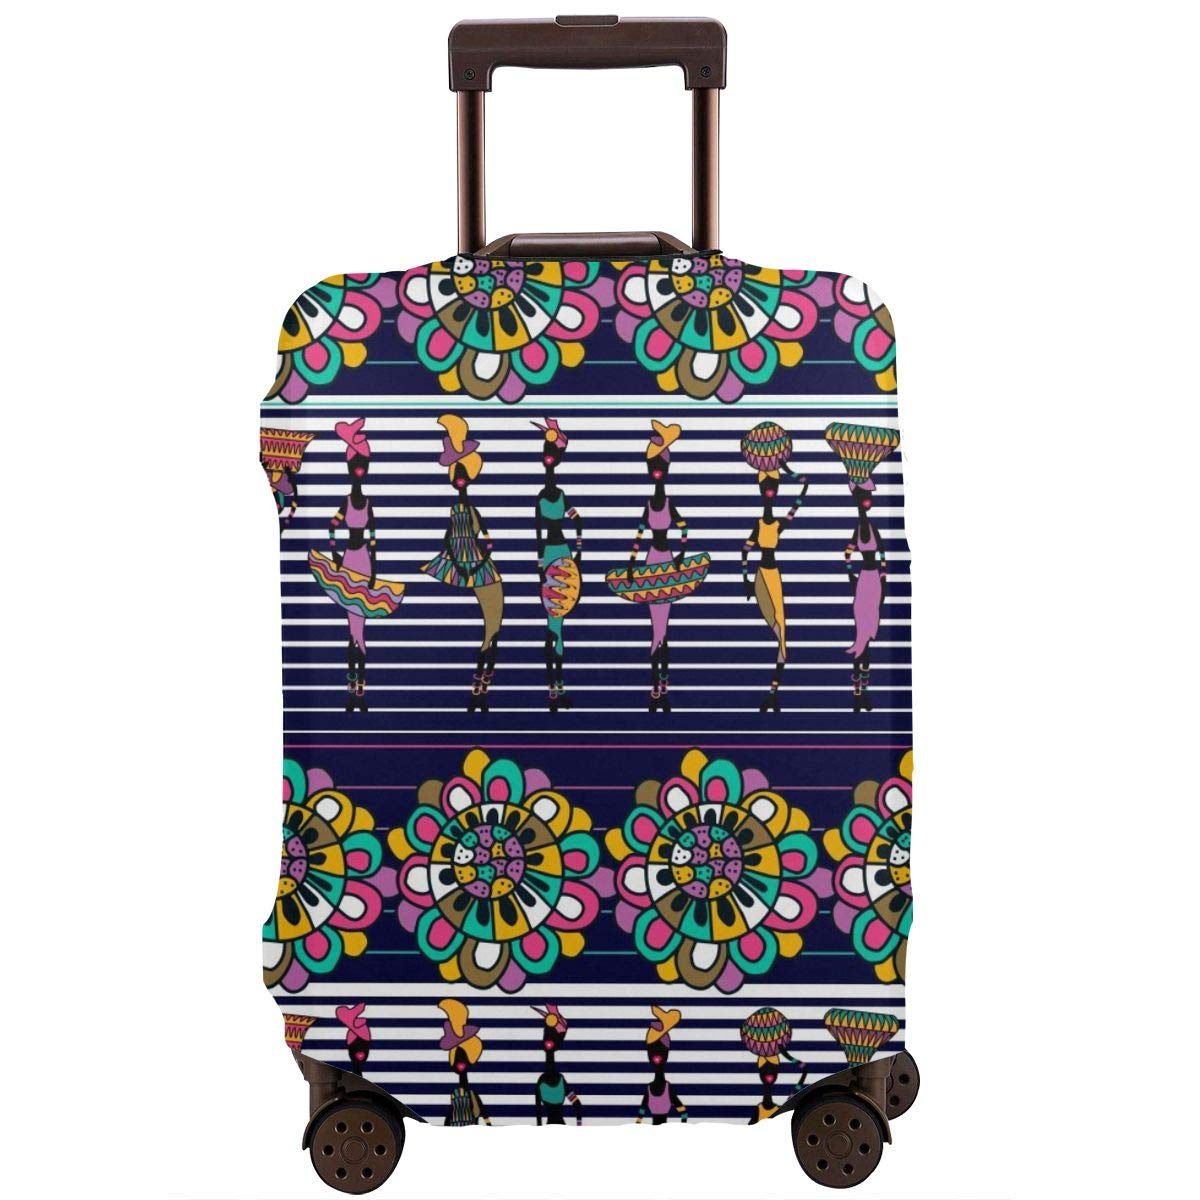 18-32 Inch Luggage Cover Protector Bag Suitcase Cover Protectors Travel Luggage Sleeve Protector S M L XL Boho Stripes XL